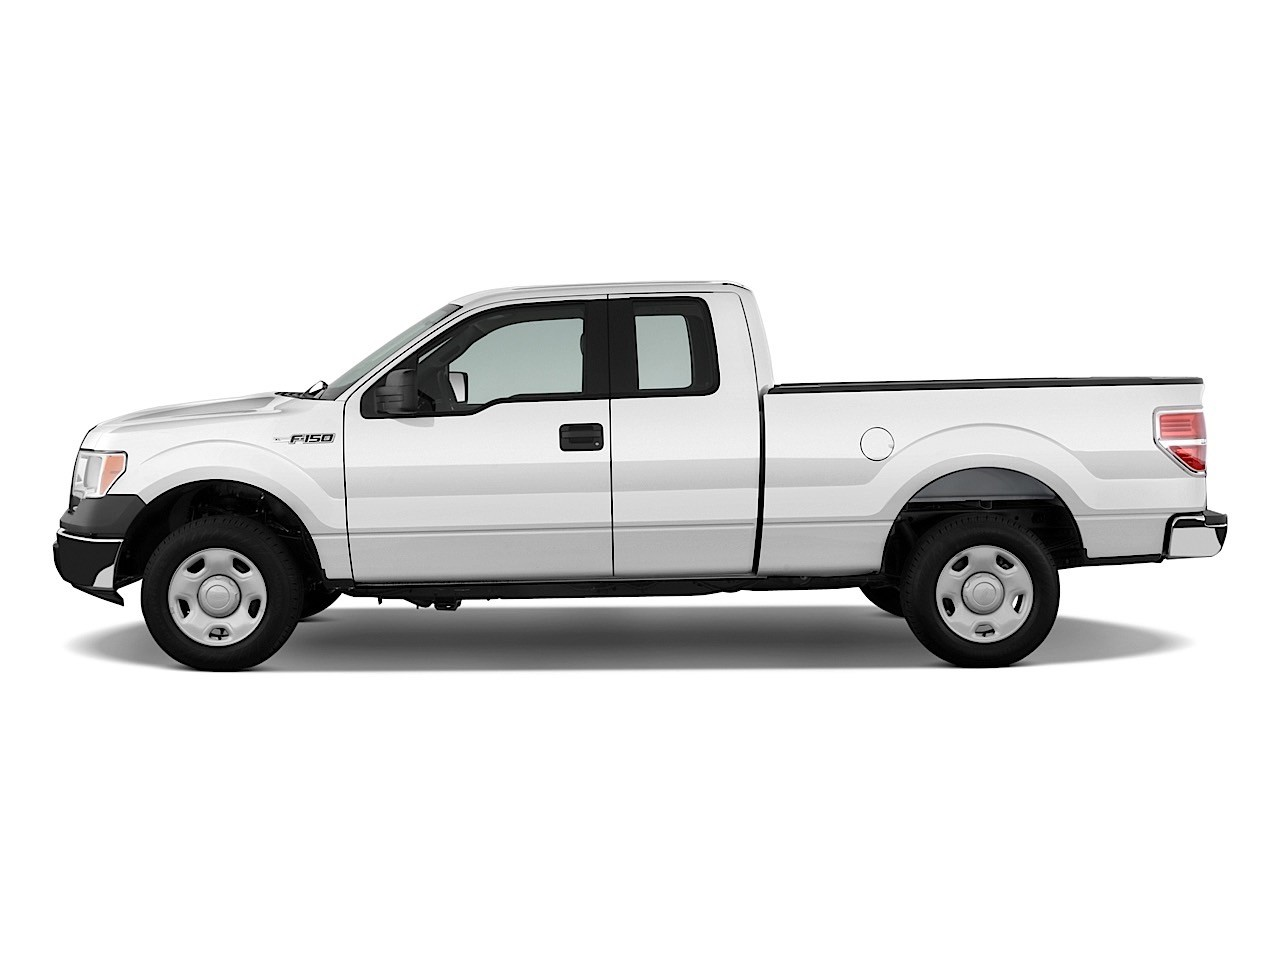 FORD F-150 Super Cab specs - 2009, 2010, 2011, 2012 ...